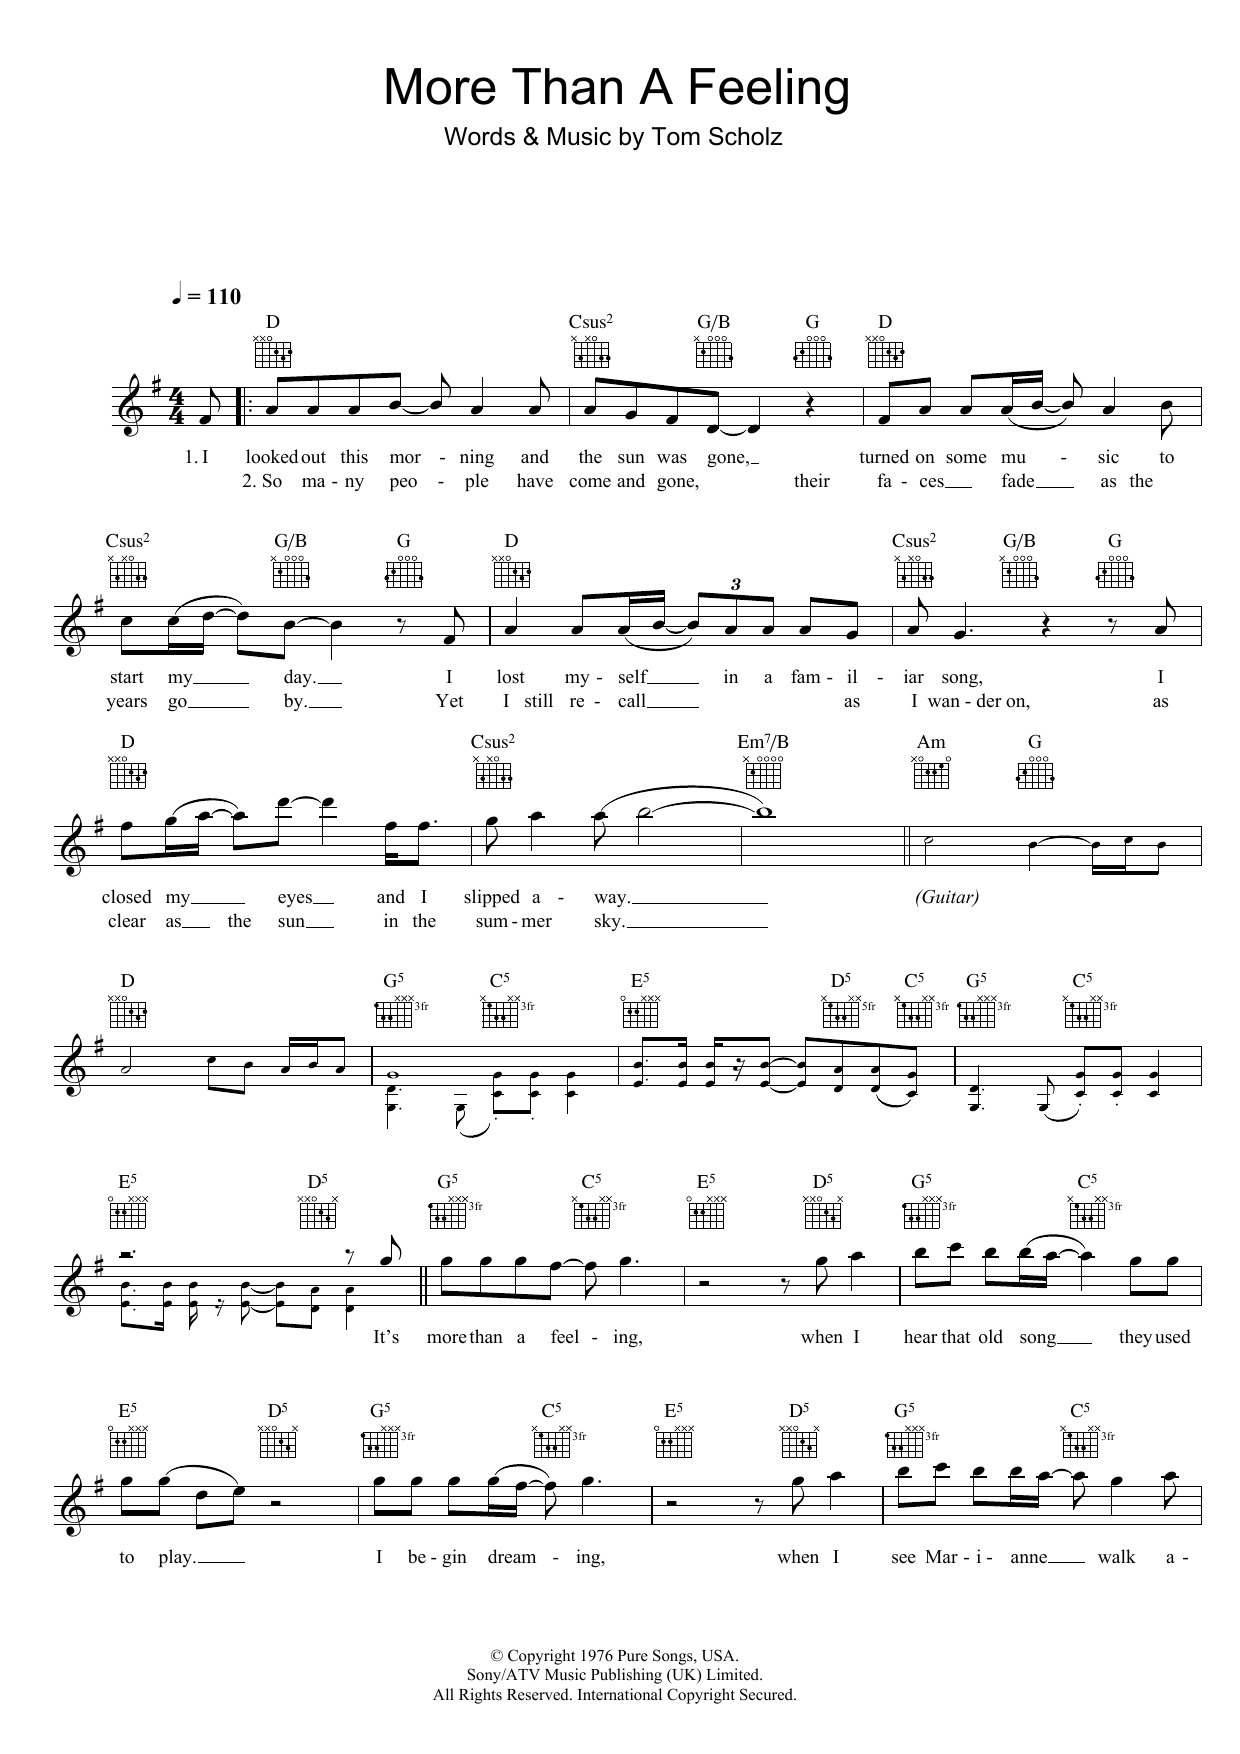 More Than A Feeling Boston Melody Line Lyrics Chords